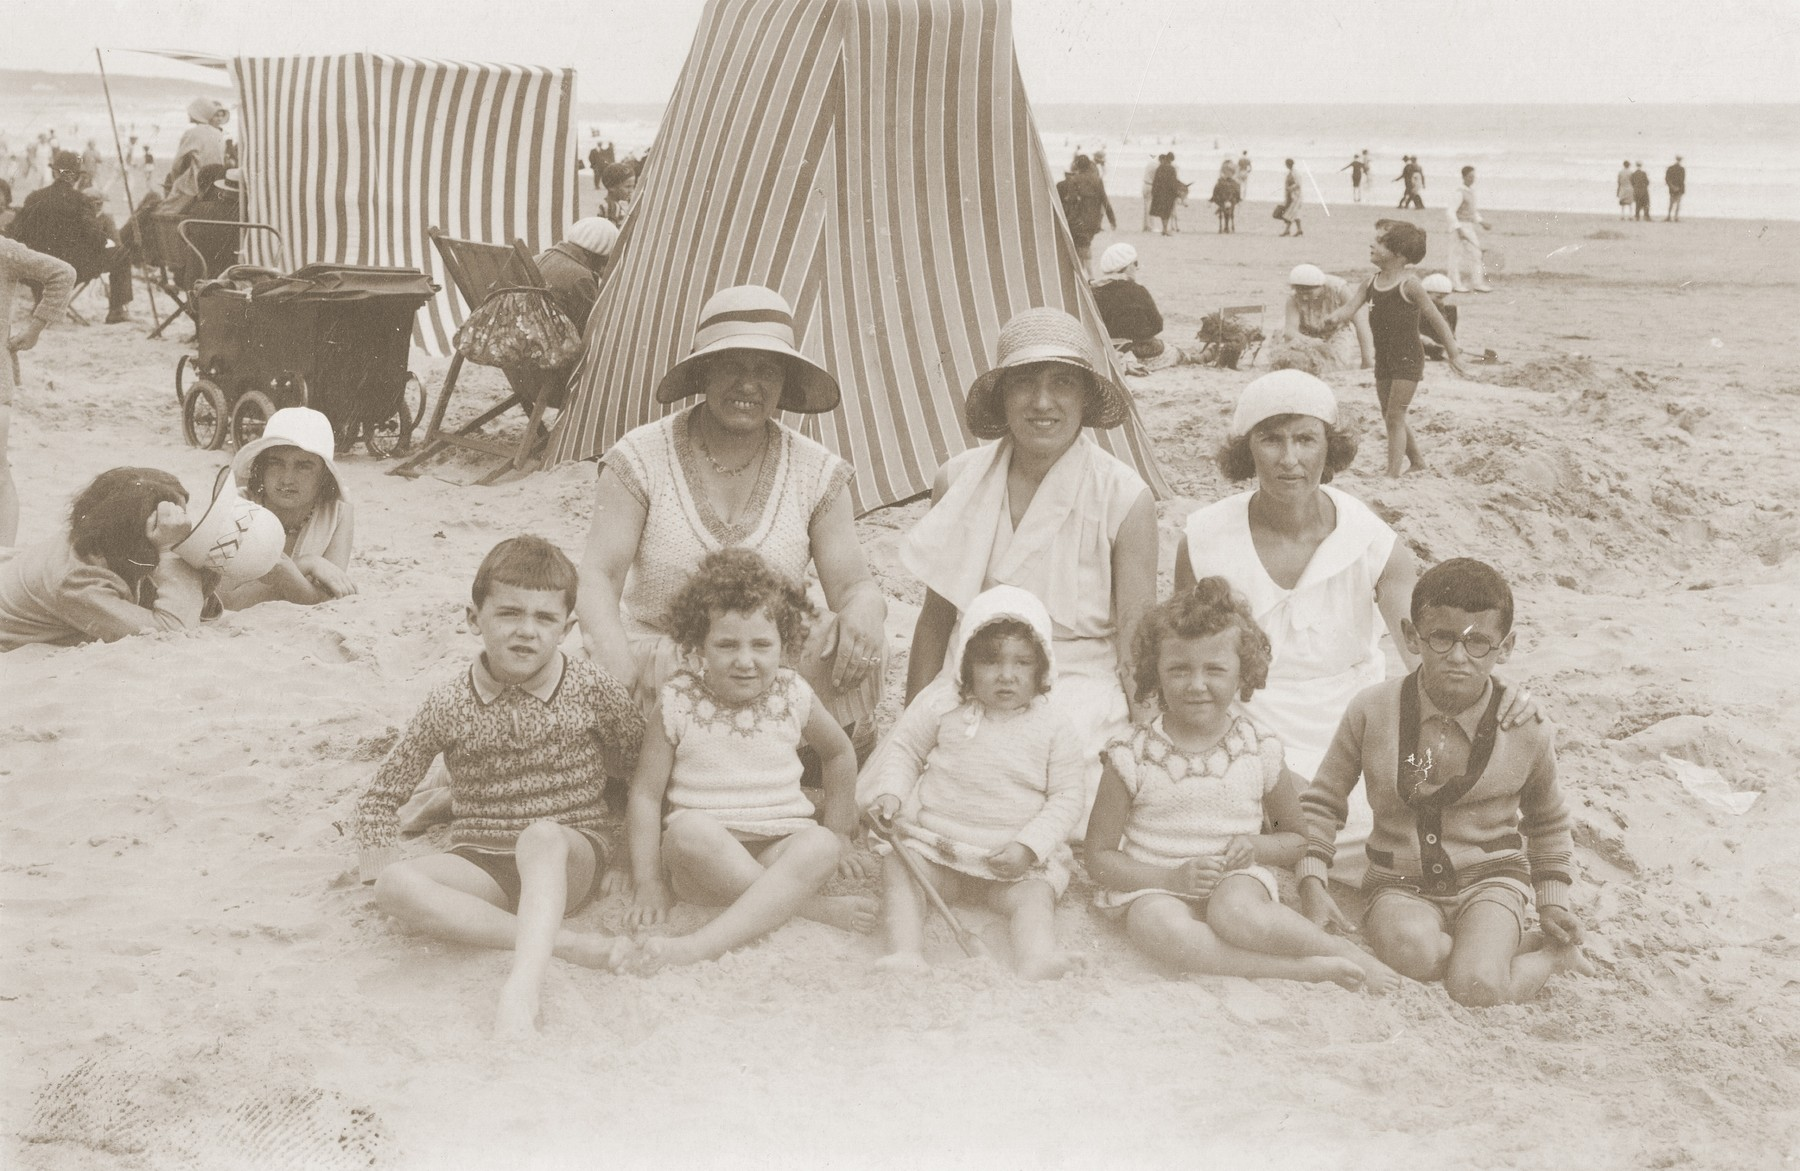 The Rubinsztejn family poses in front of a cabana on a beach in France.   Pictured are: Denise Grynberg, Eveline Grynberg, Dworja Rubinsztejn, Armand Rubinsztejn, and Chaya Grynberg Rubinsztejn.